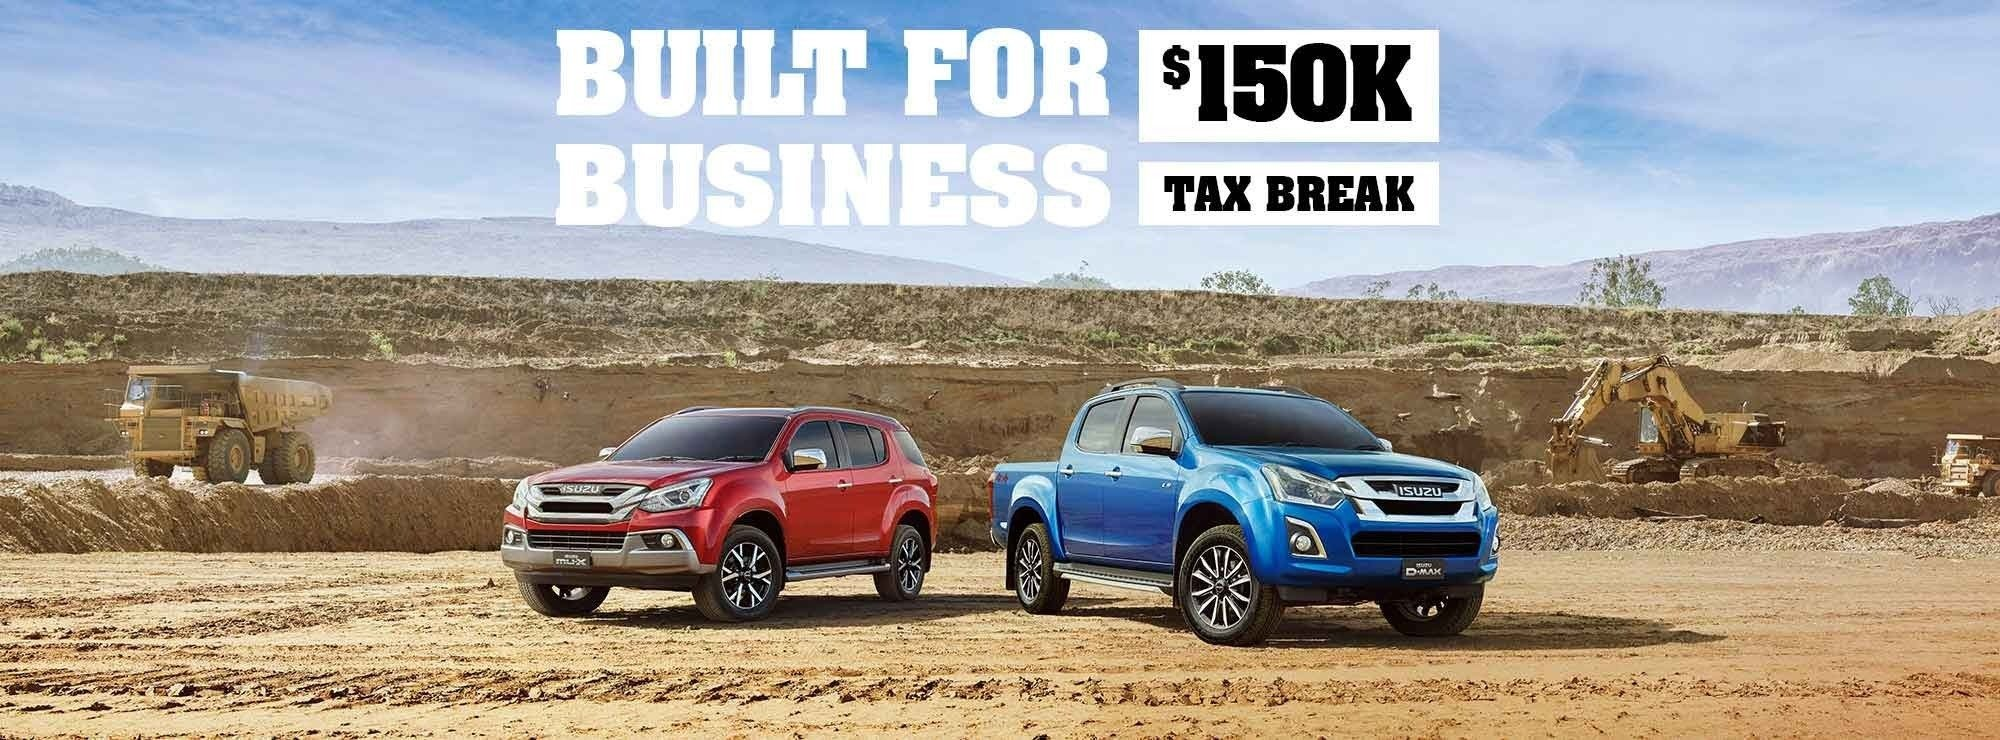 Osborne Park Isuzu Ute - Tax Write Off